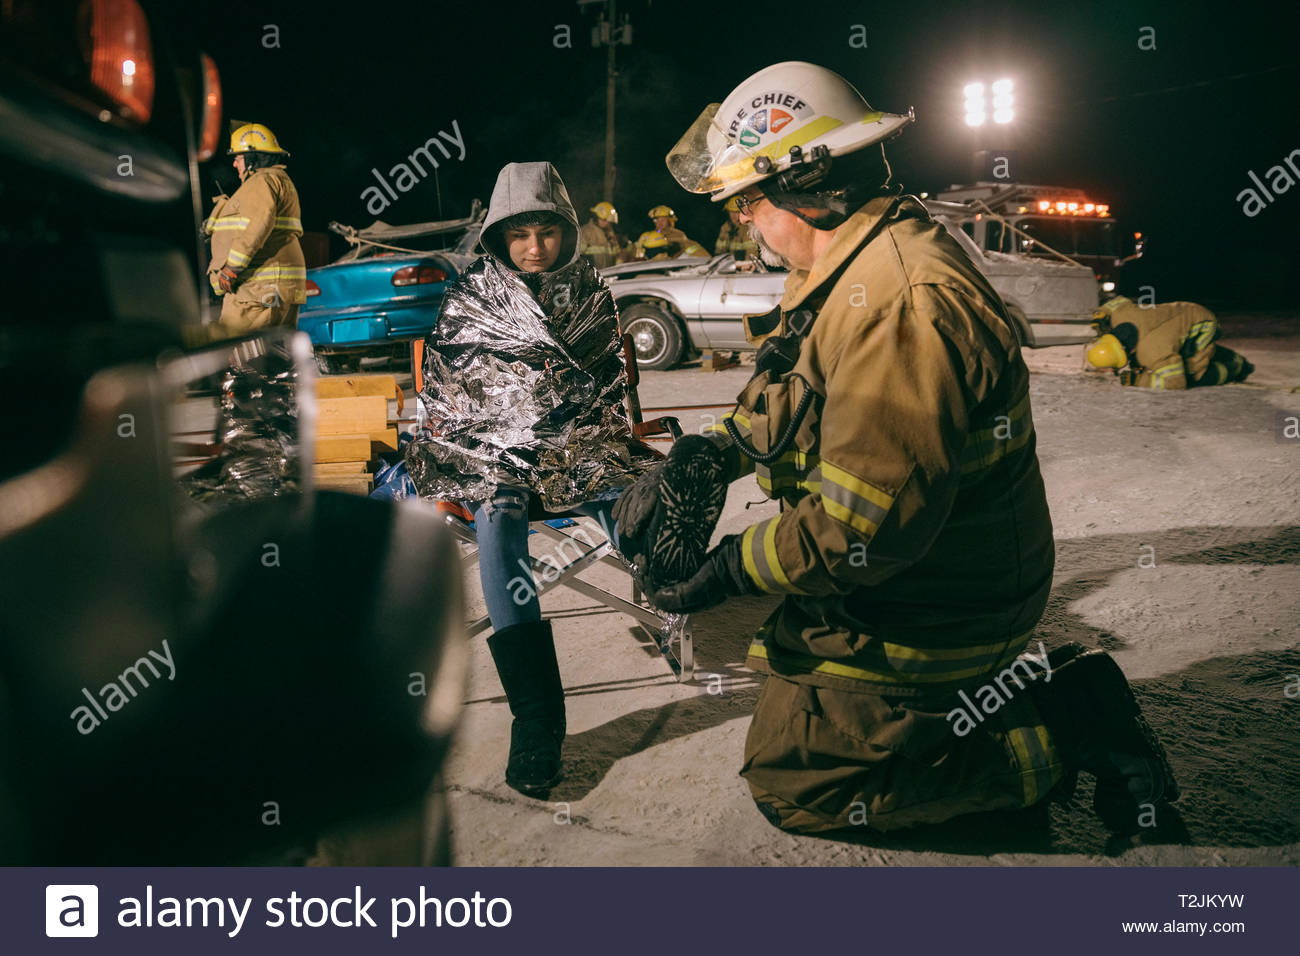 Firefighter tending to car accident victim - Stock Image